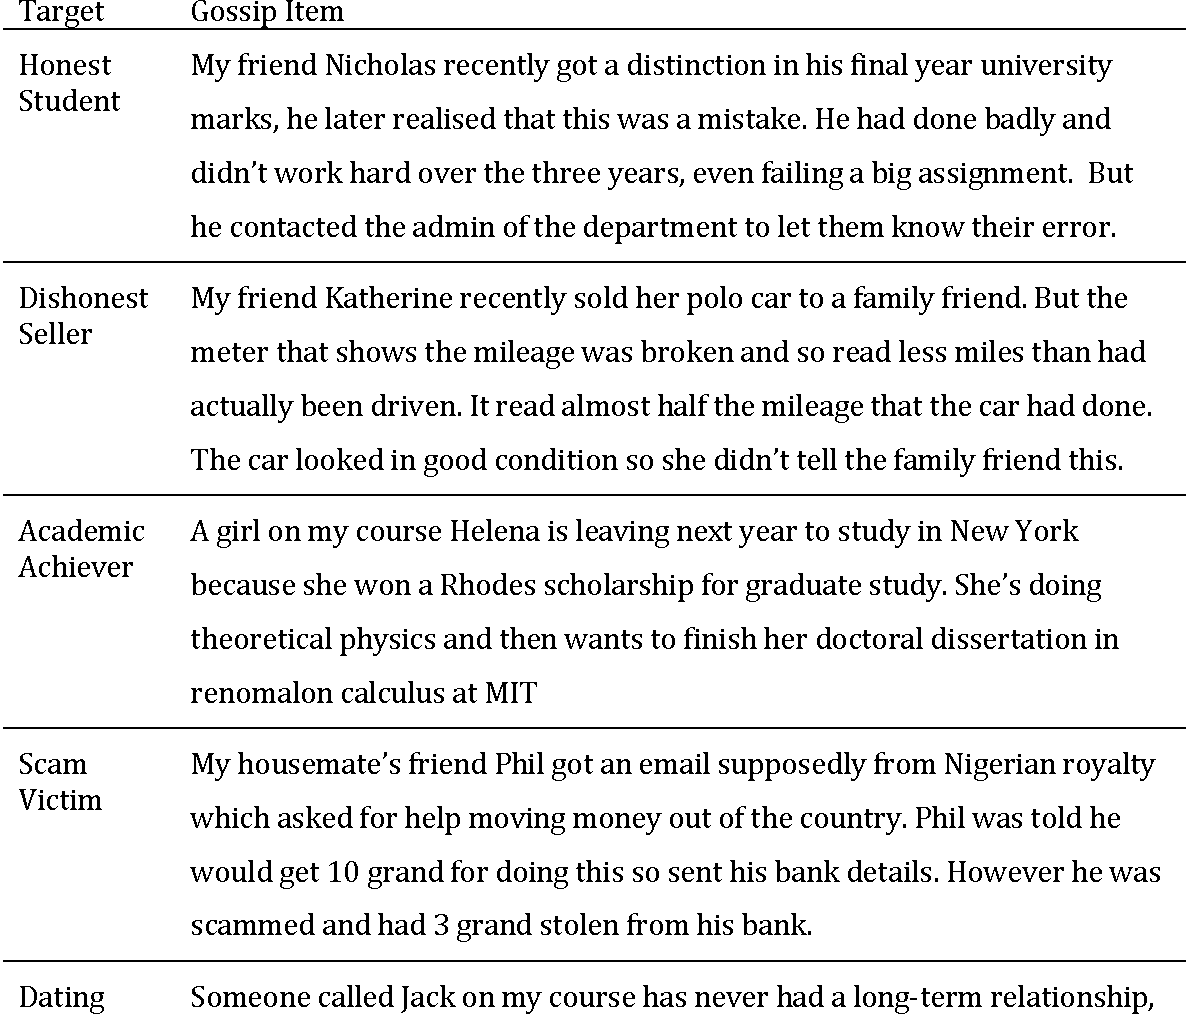 Table 1 from Gossiping as moral social action: A functionalist